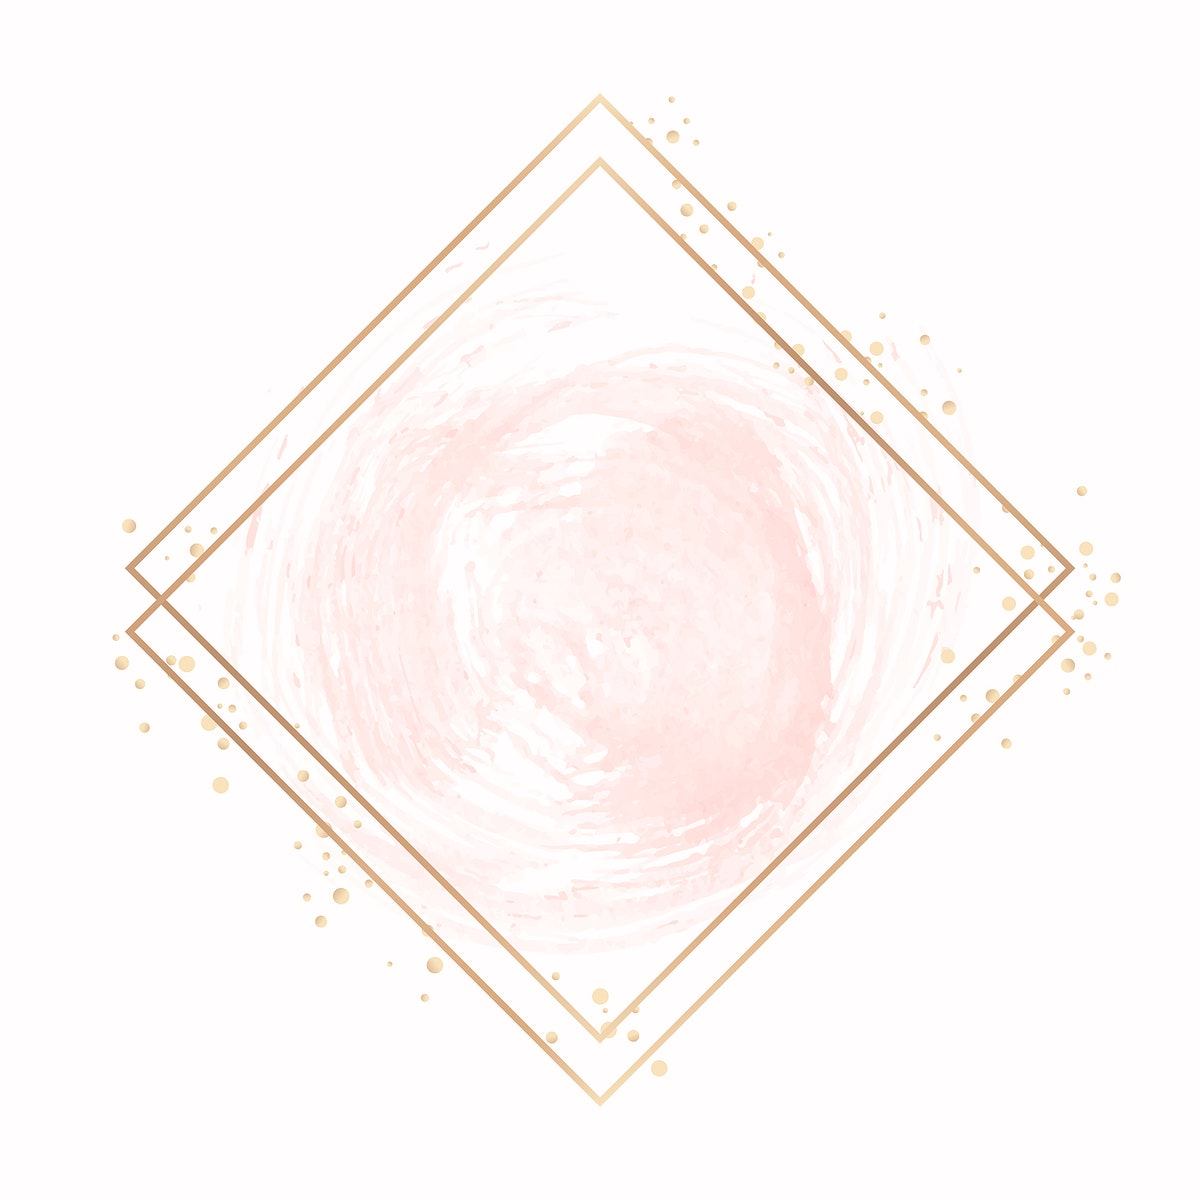 Gold rhombus frame on a pastel pink background vector